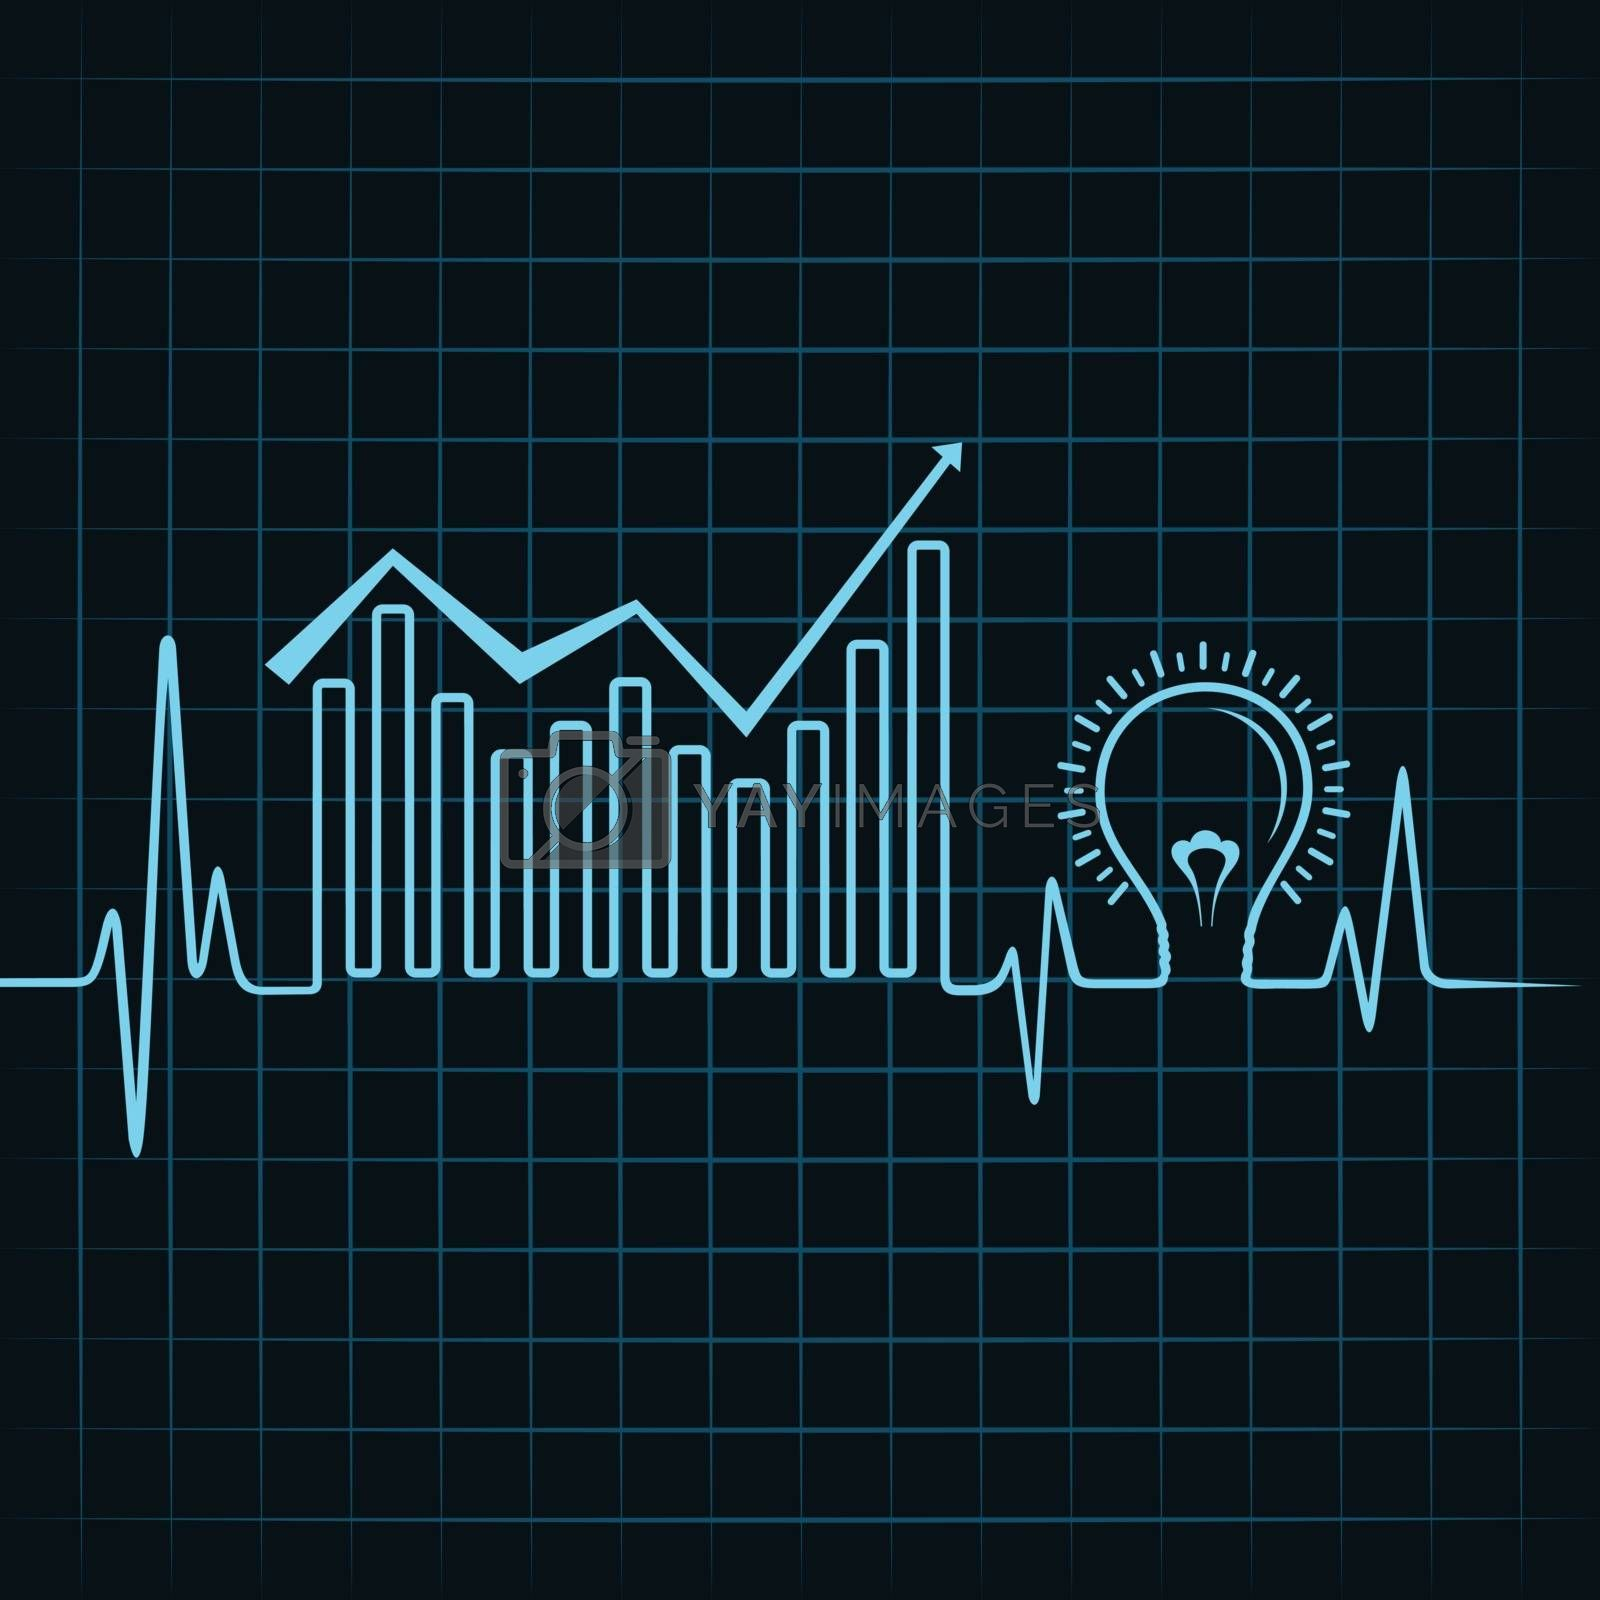 heartbeat make business graph and light-bulb stock vector